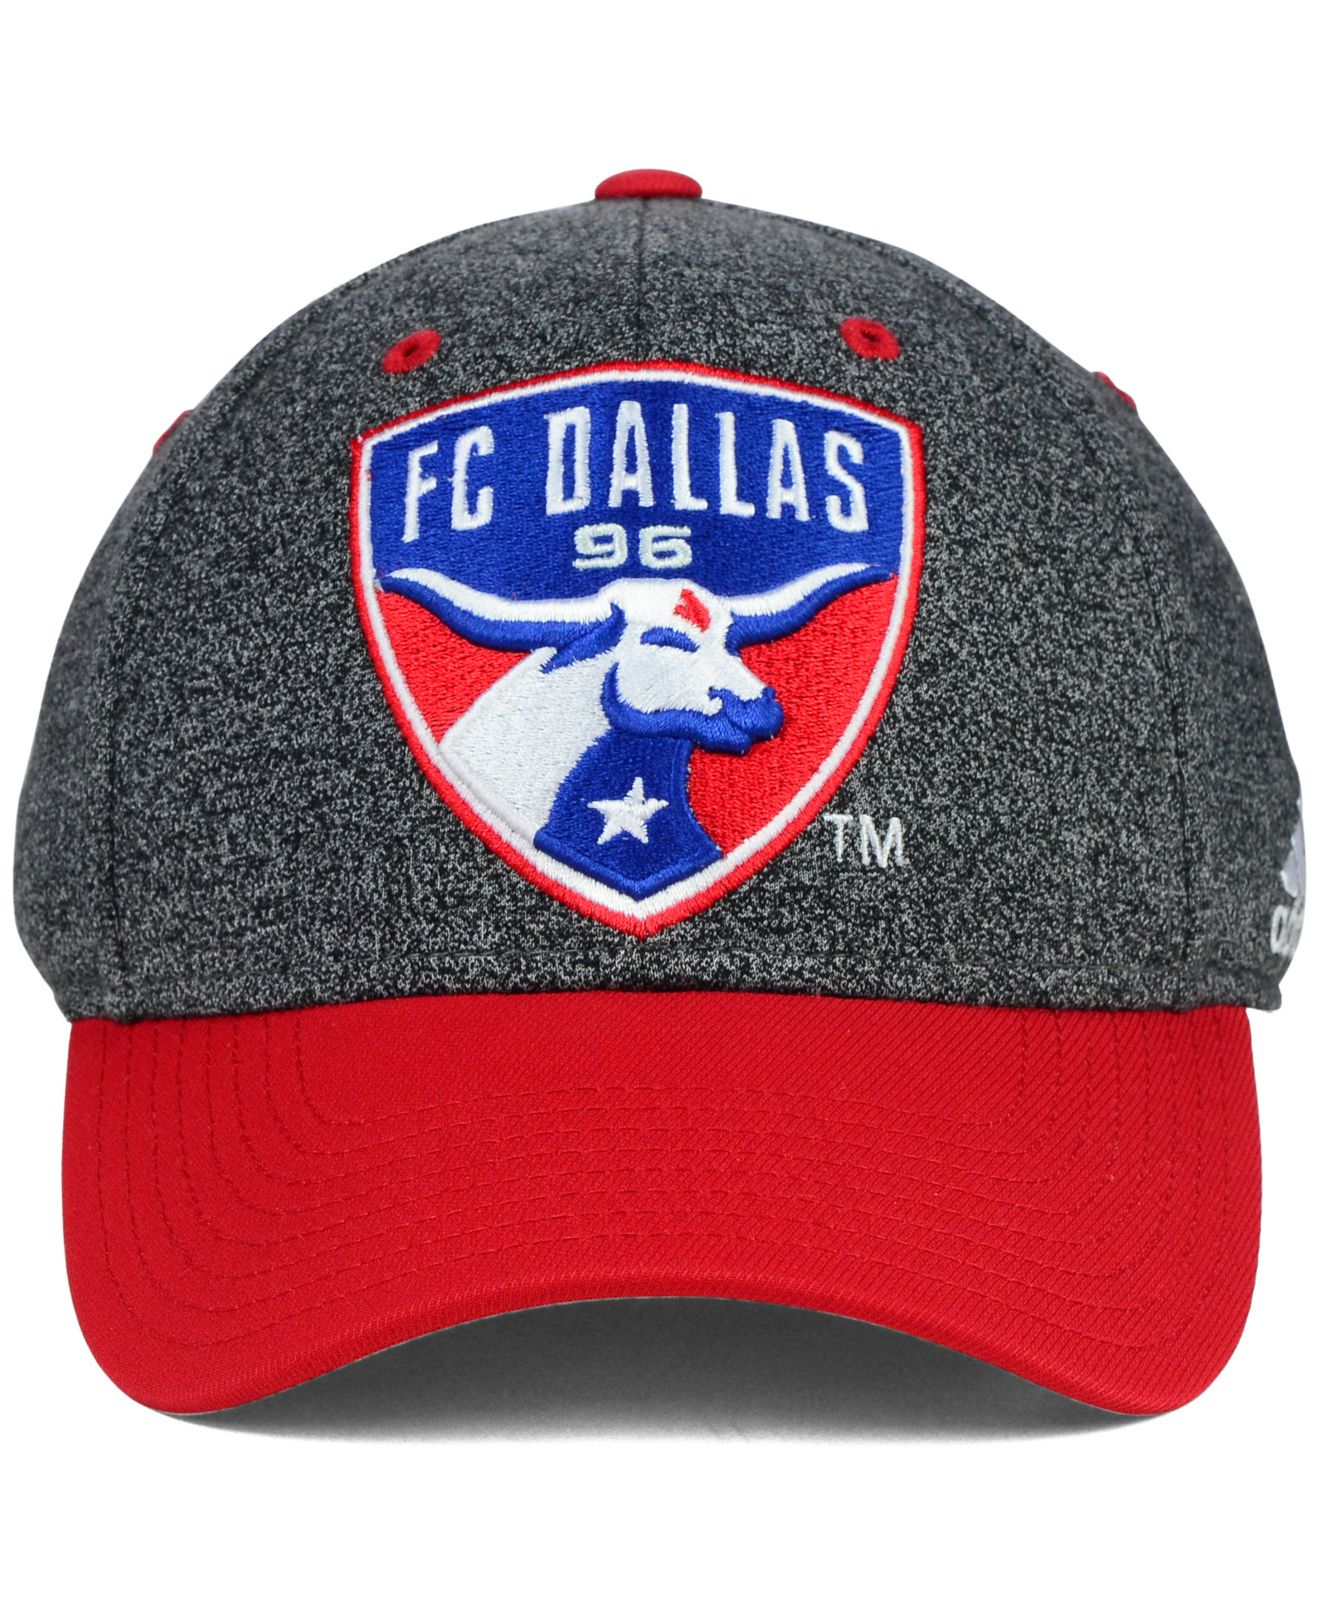 0d384634712f4 ... mls team performance structured adjustable hat 1b239 3f39c  usa lyst  adidas fc dallas two touch cap in gray for men 42e47 3dbb7